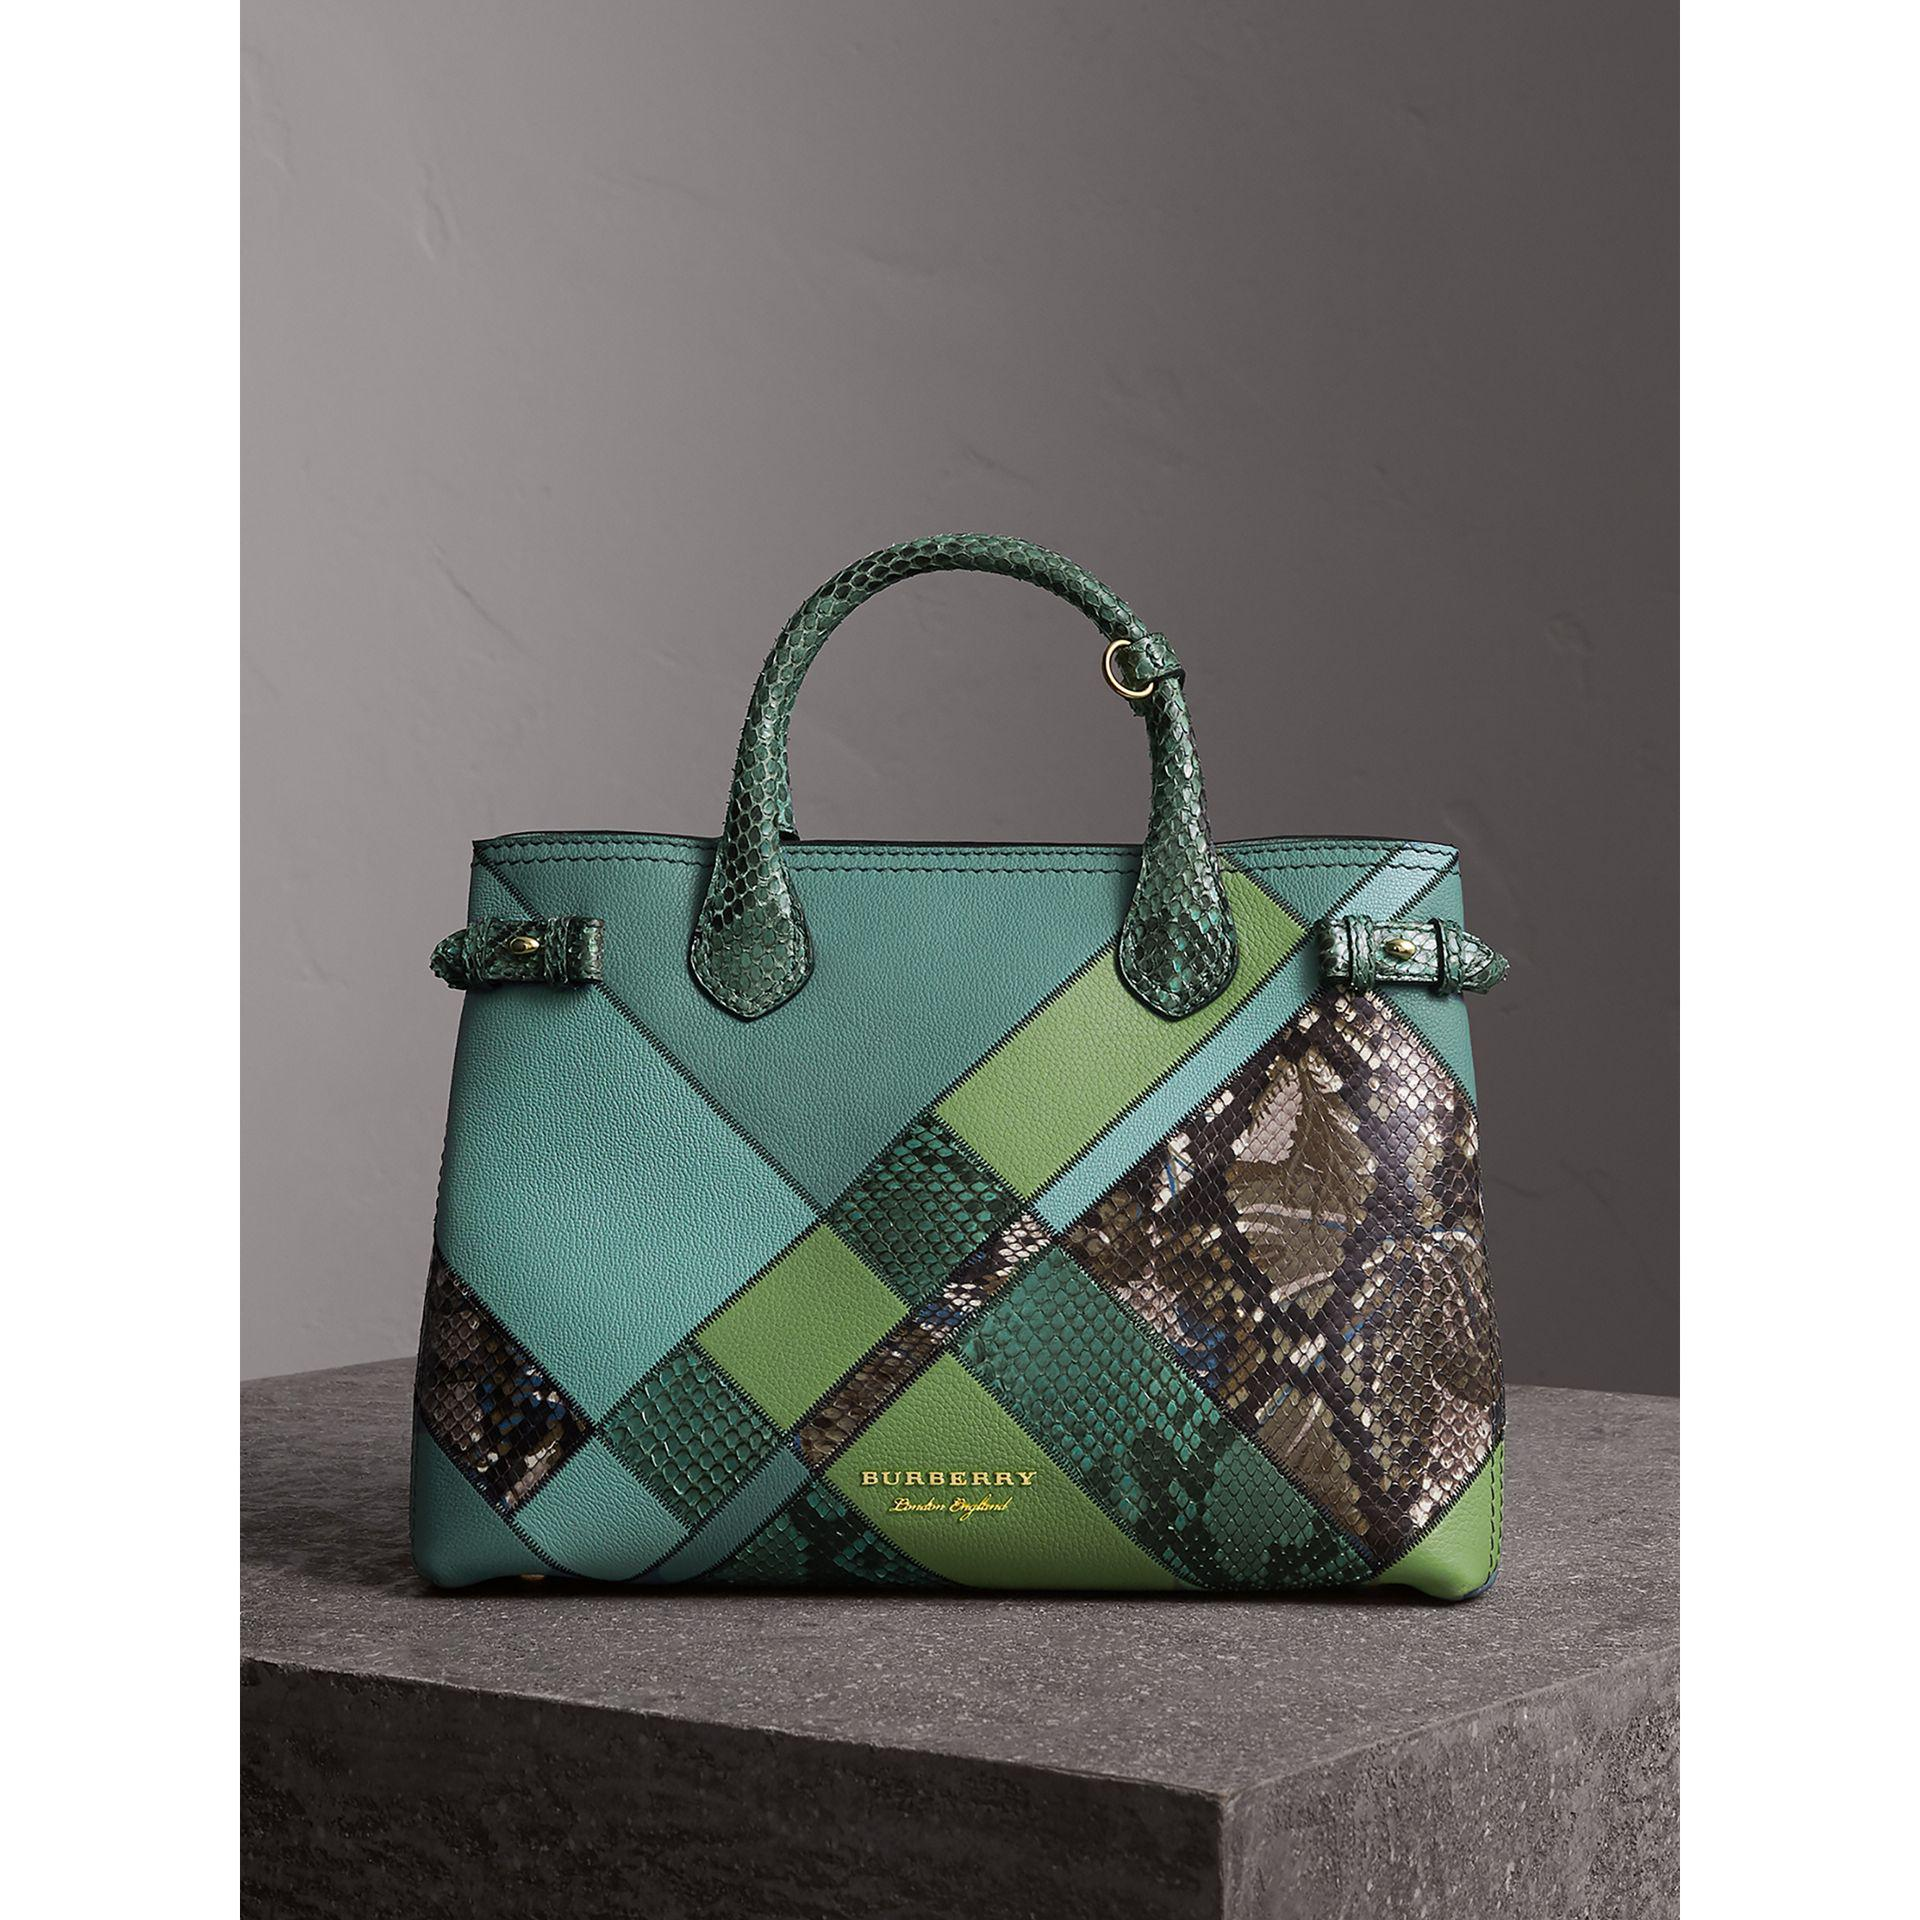 c2e3c099e450 Lyst - Burberry The Medium Banner In Patchwork Leather And Python ...